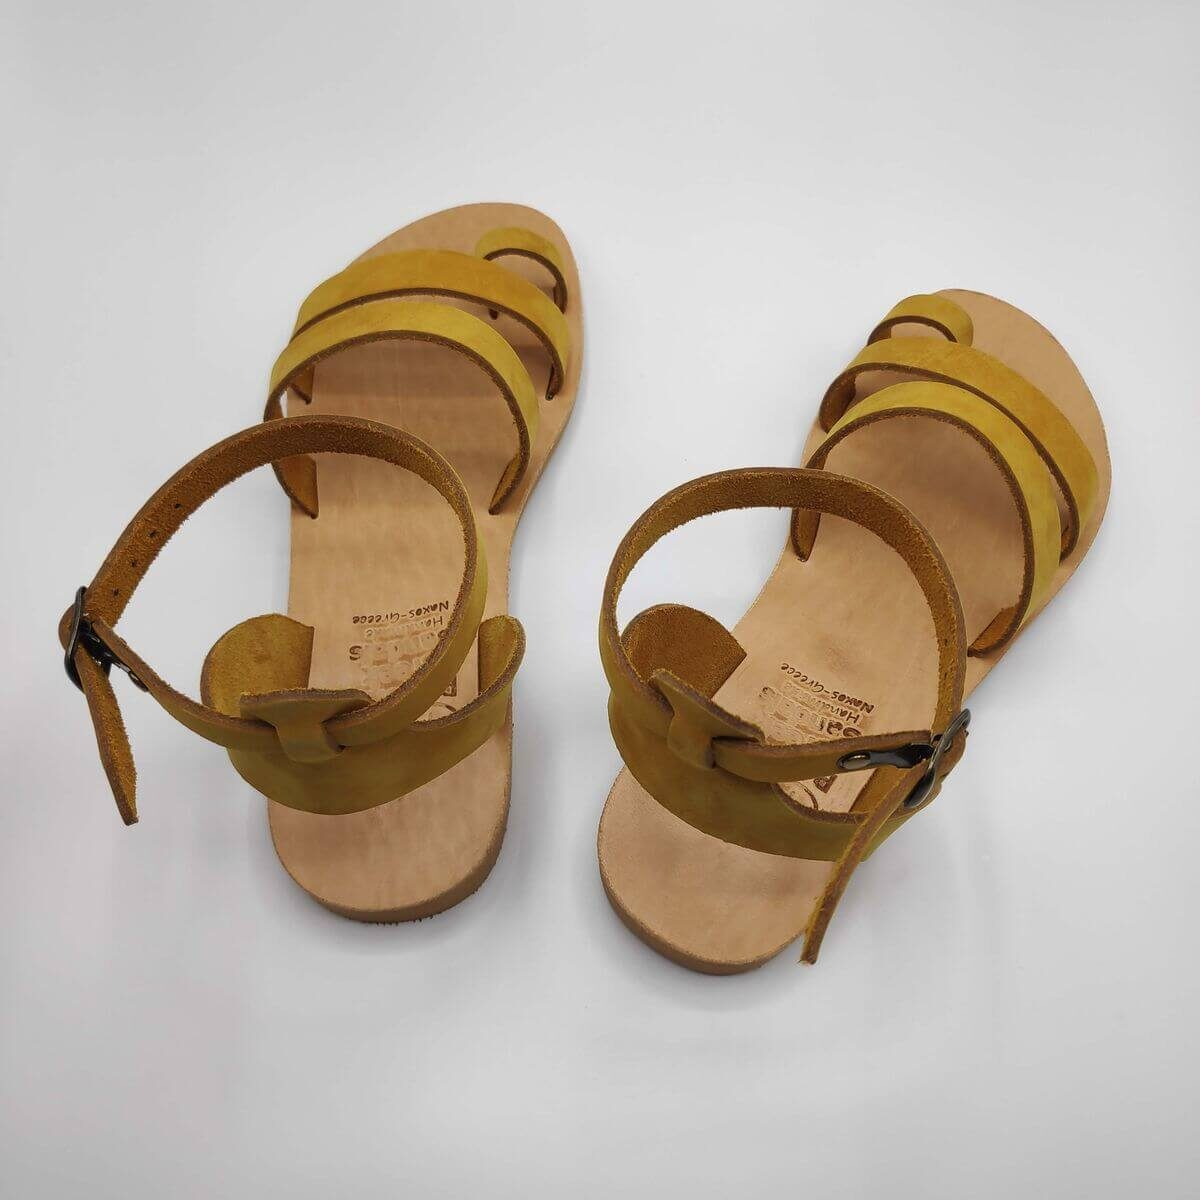 Yellow nubuck leather dressy sandals with two straps, toe ring and high ankle strap, back view